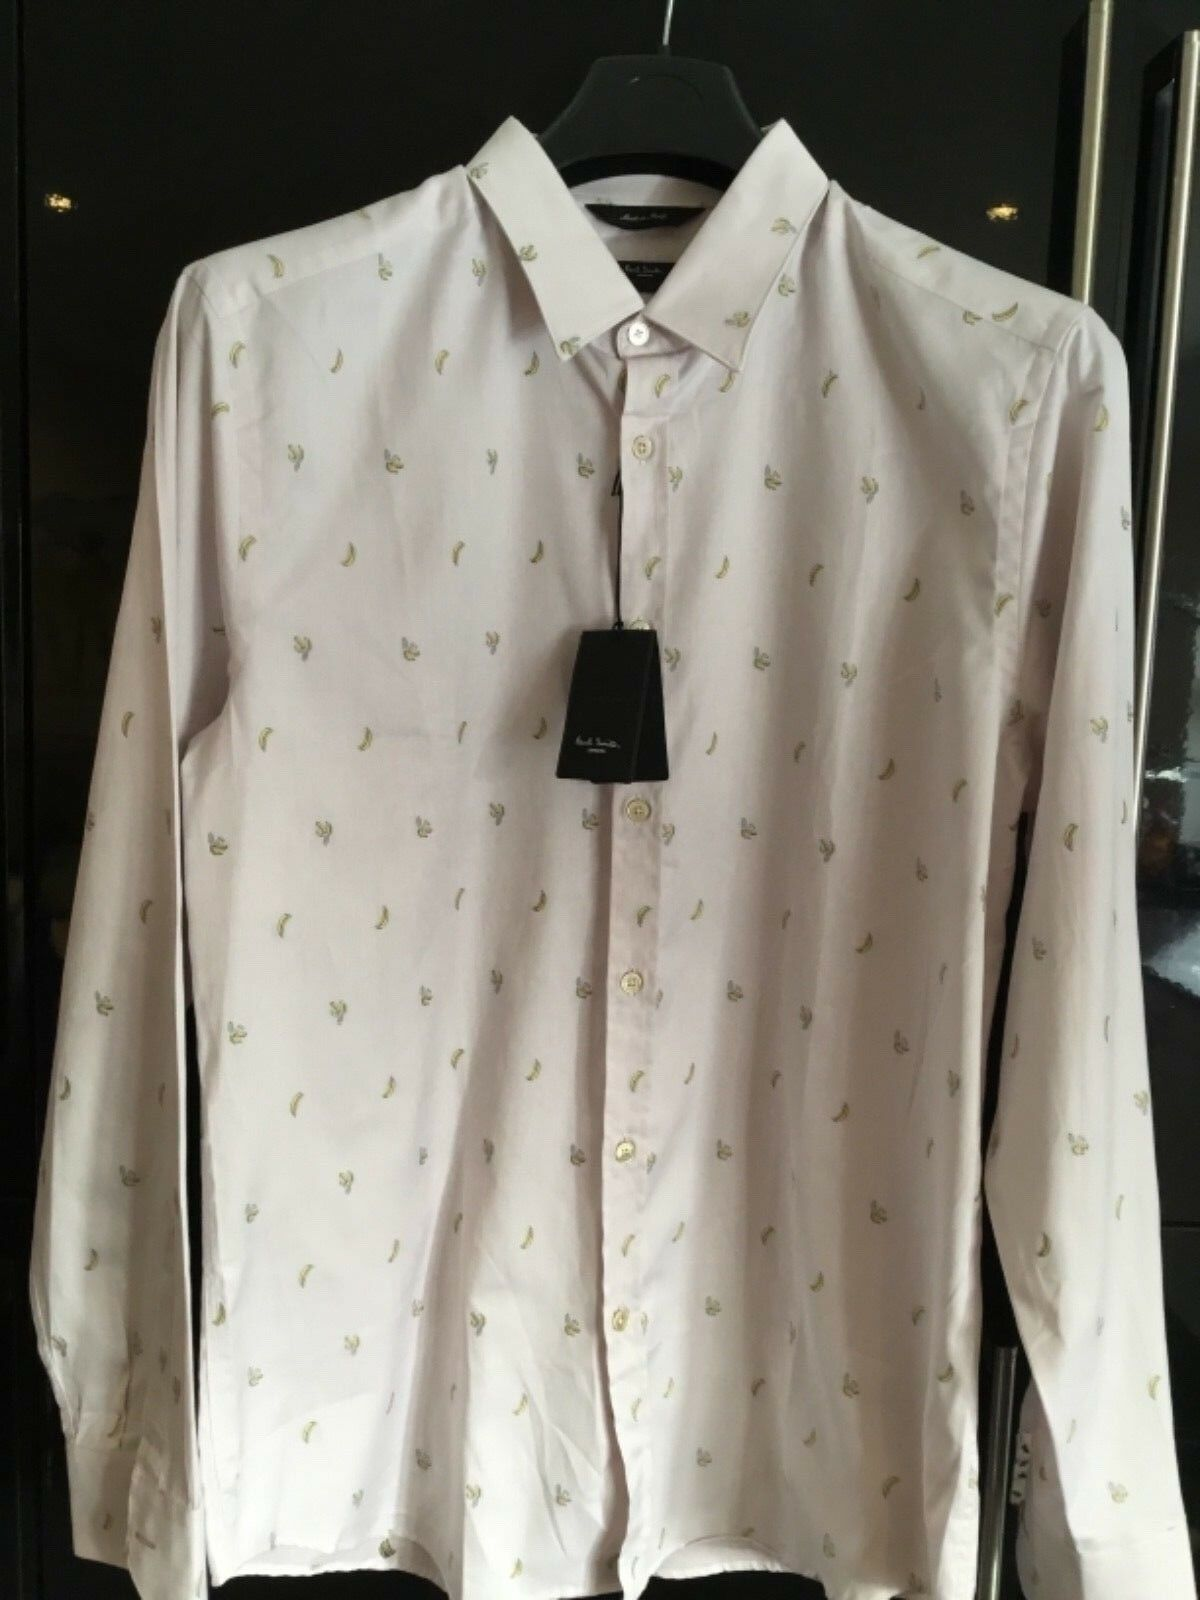 NEW PAUL SMITH NEW THE BYARD Shirt Mainline Size 17 HINT OF PINK BANANA SHIRT